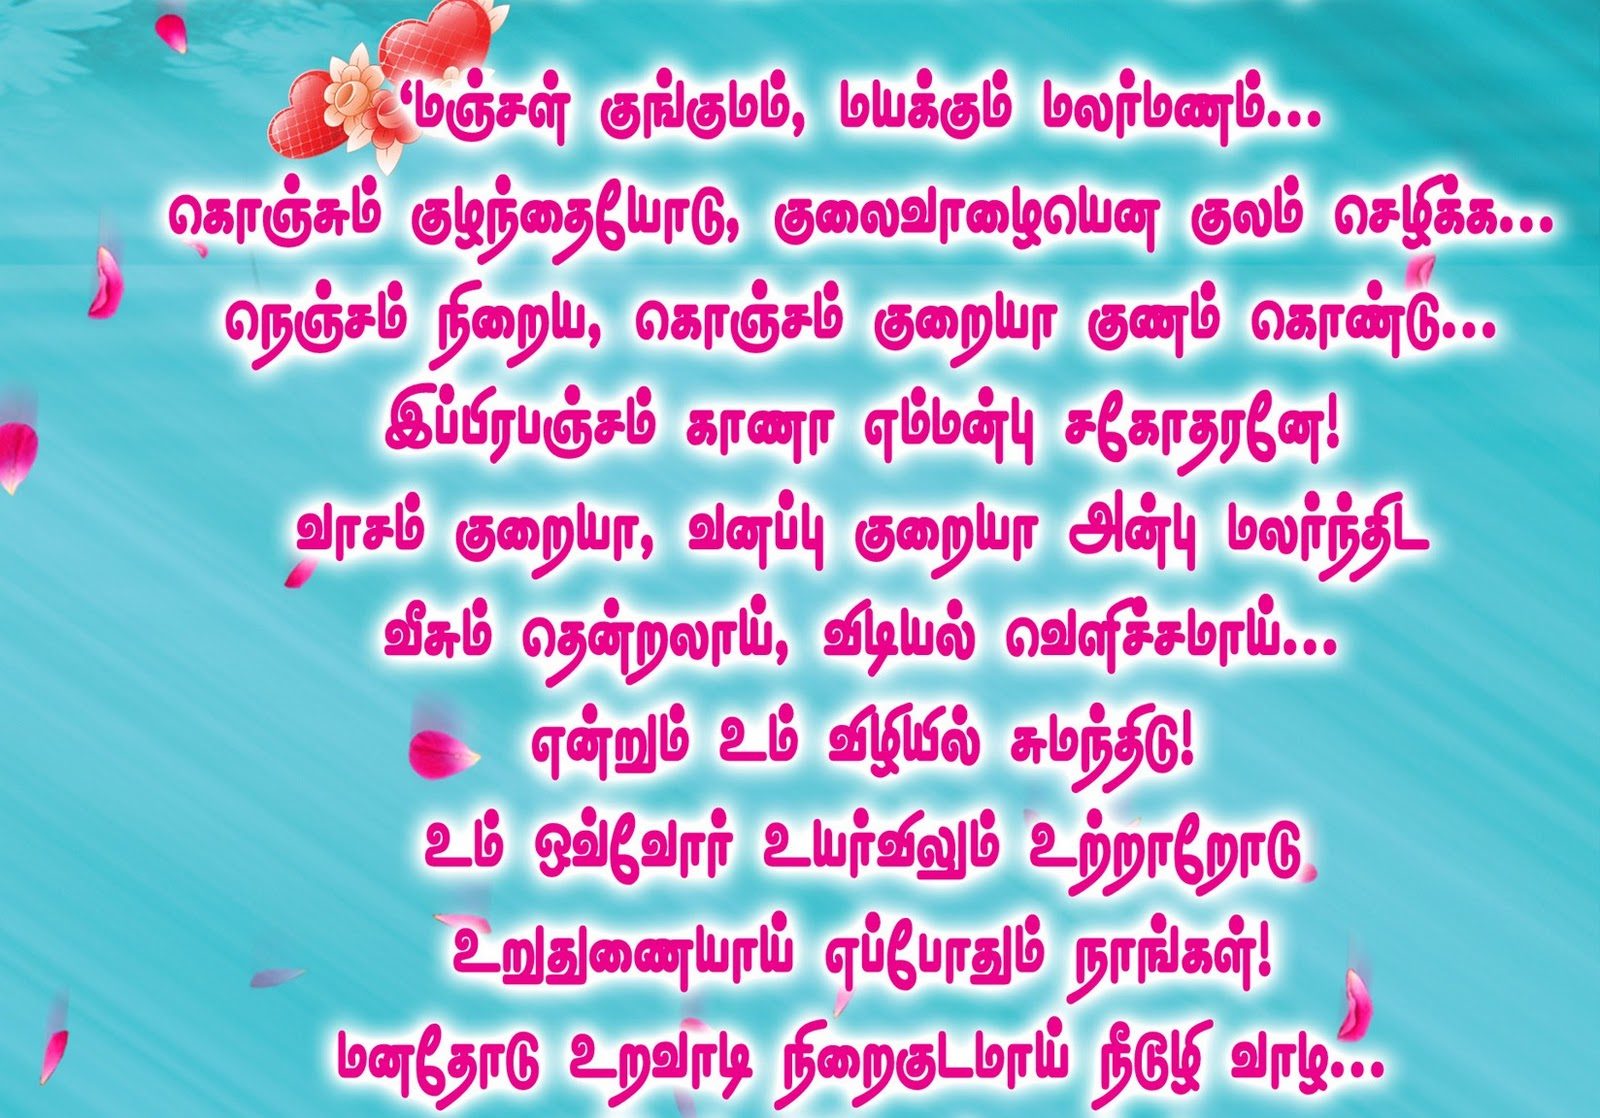 Tamil Kavithai Marriage Wishes In Tamil Images